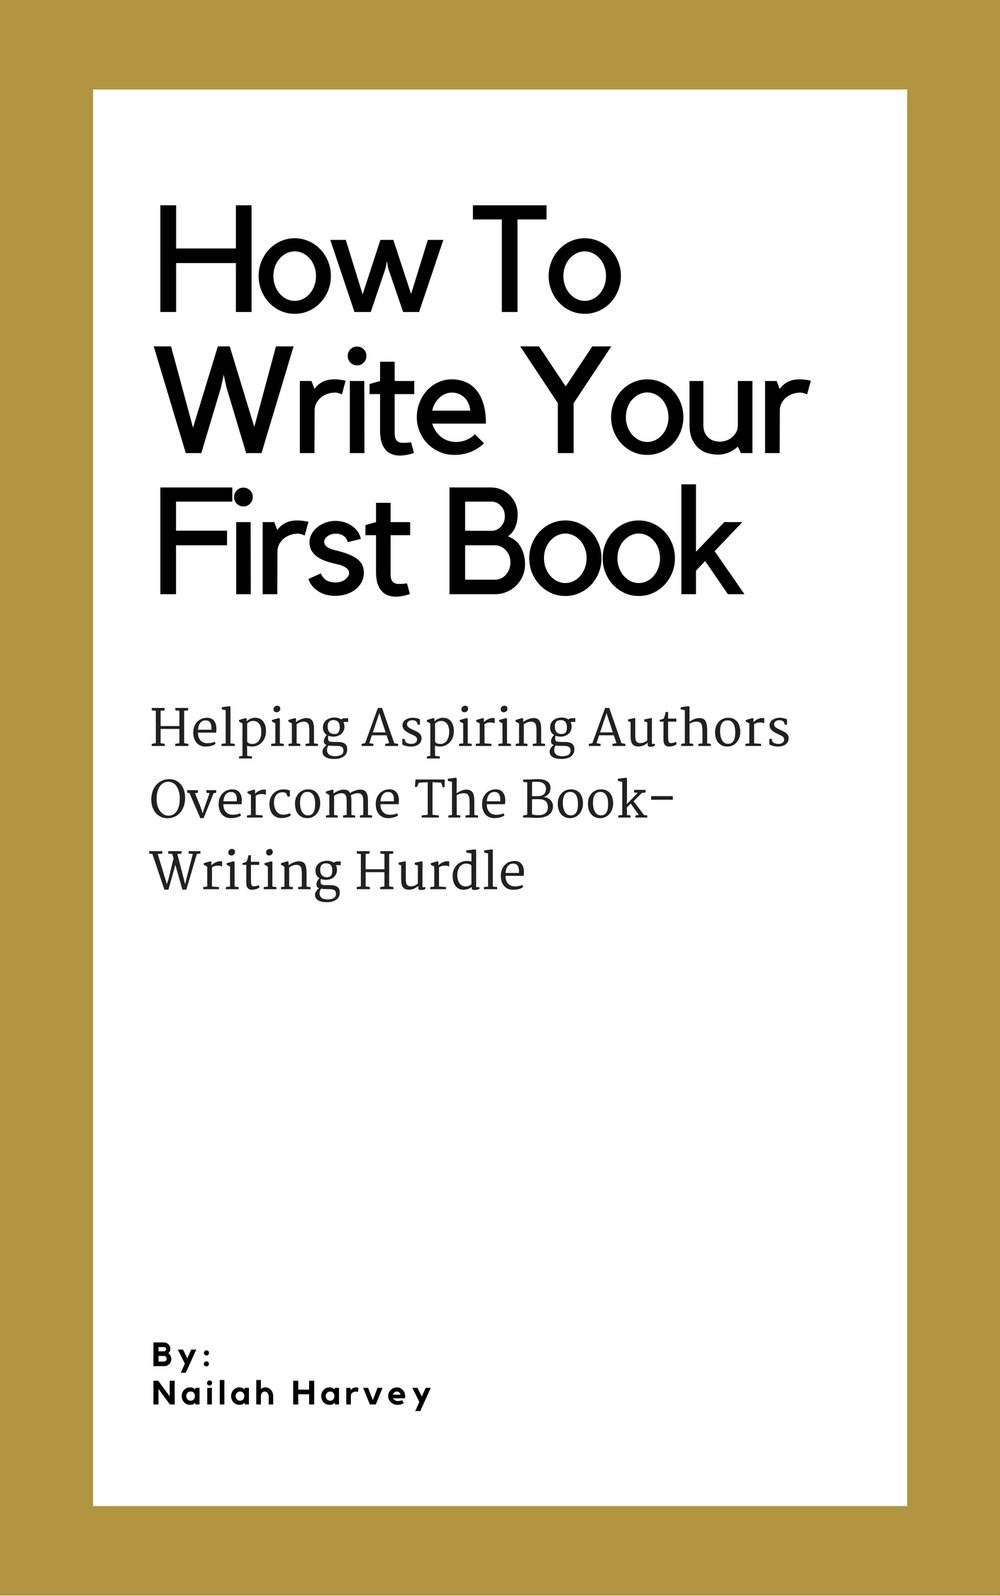 How to help aspiring authors write their first book